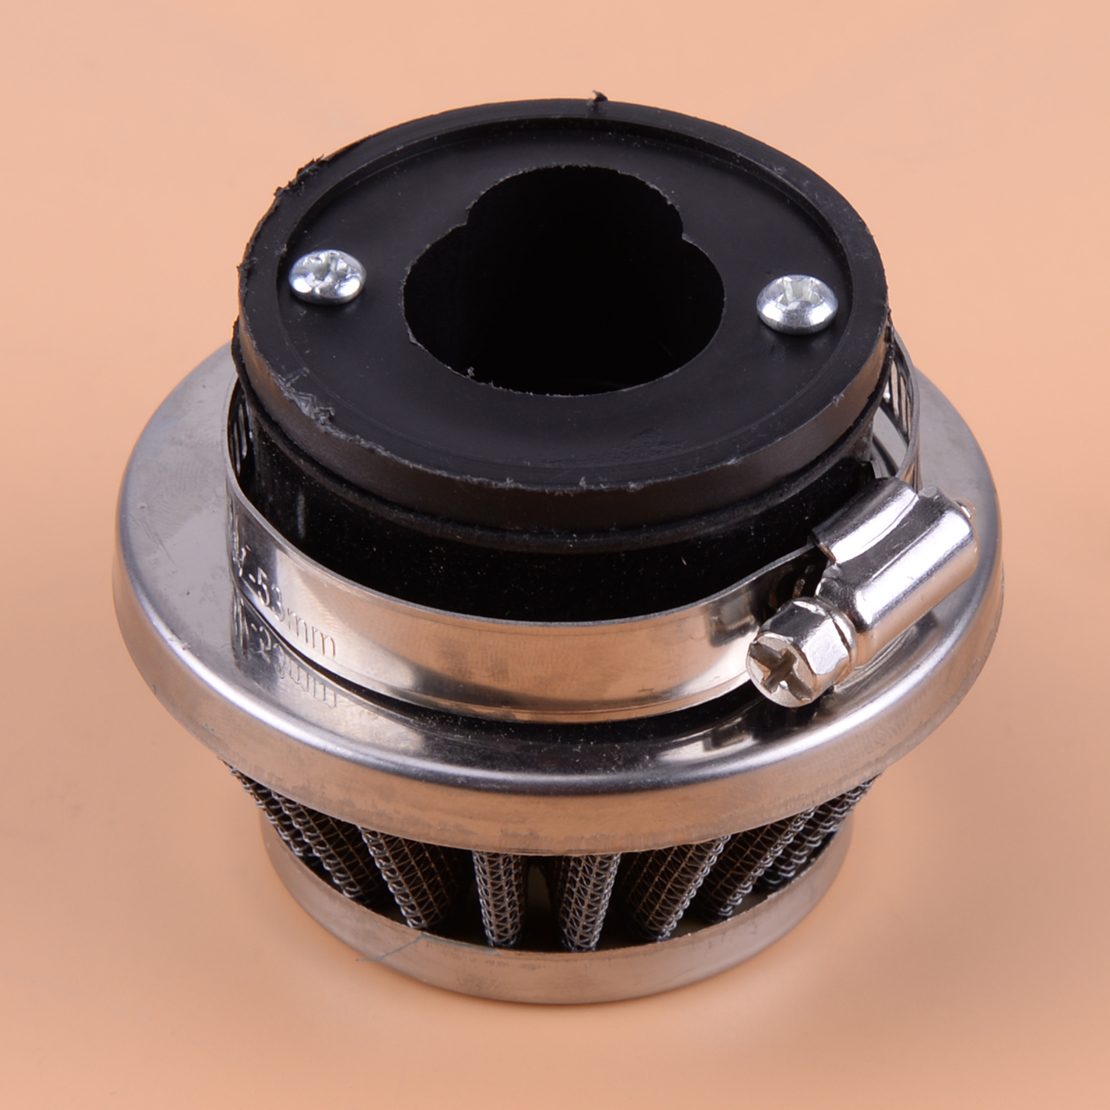 CITALL High Quality Motorcycle Air Filter Stack Metal Interior Accessories Fit For 47cc 49cc Mini Moto ATV Pocket Rocket Bike